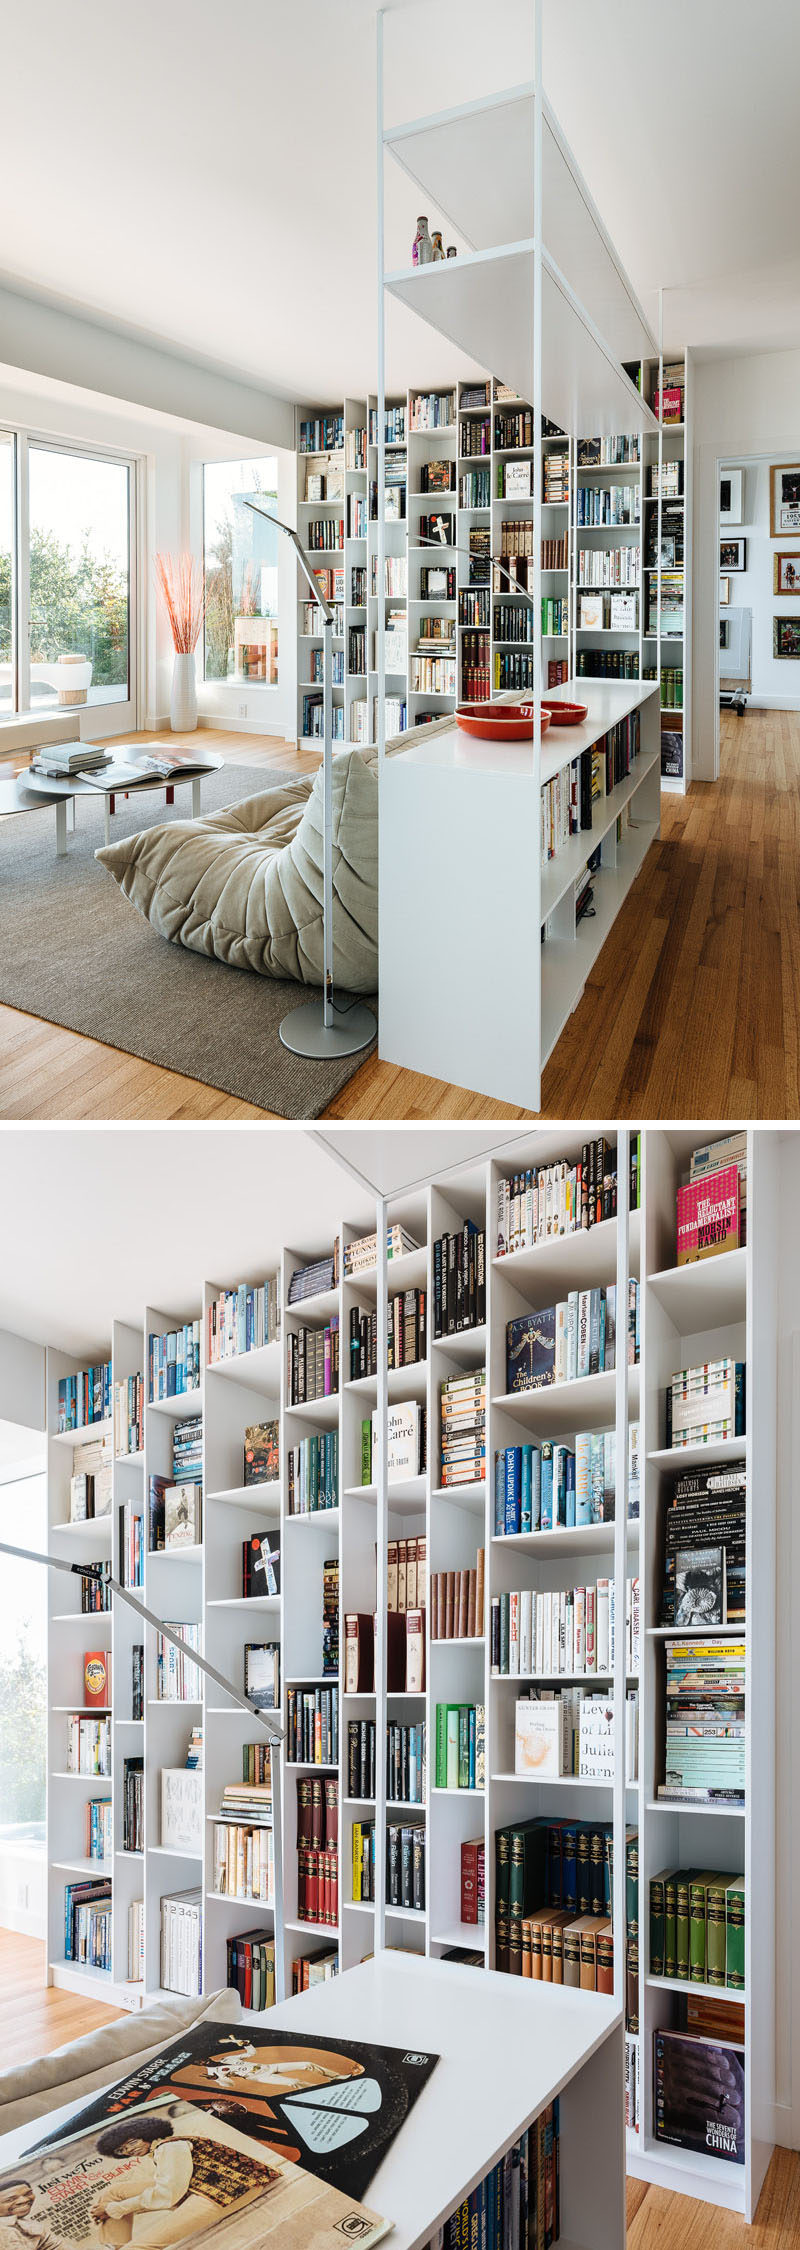 This modern interior has a floor-to-ceiling bookshelf that measures in at 9 feet tall and has asymmetrical compartments so every item has a place of significance. #Shelving #Bookshelf